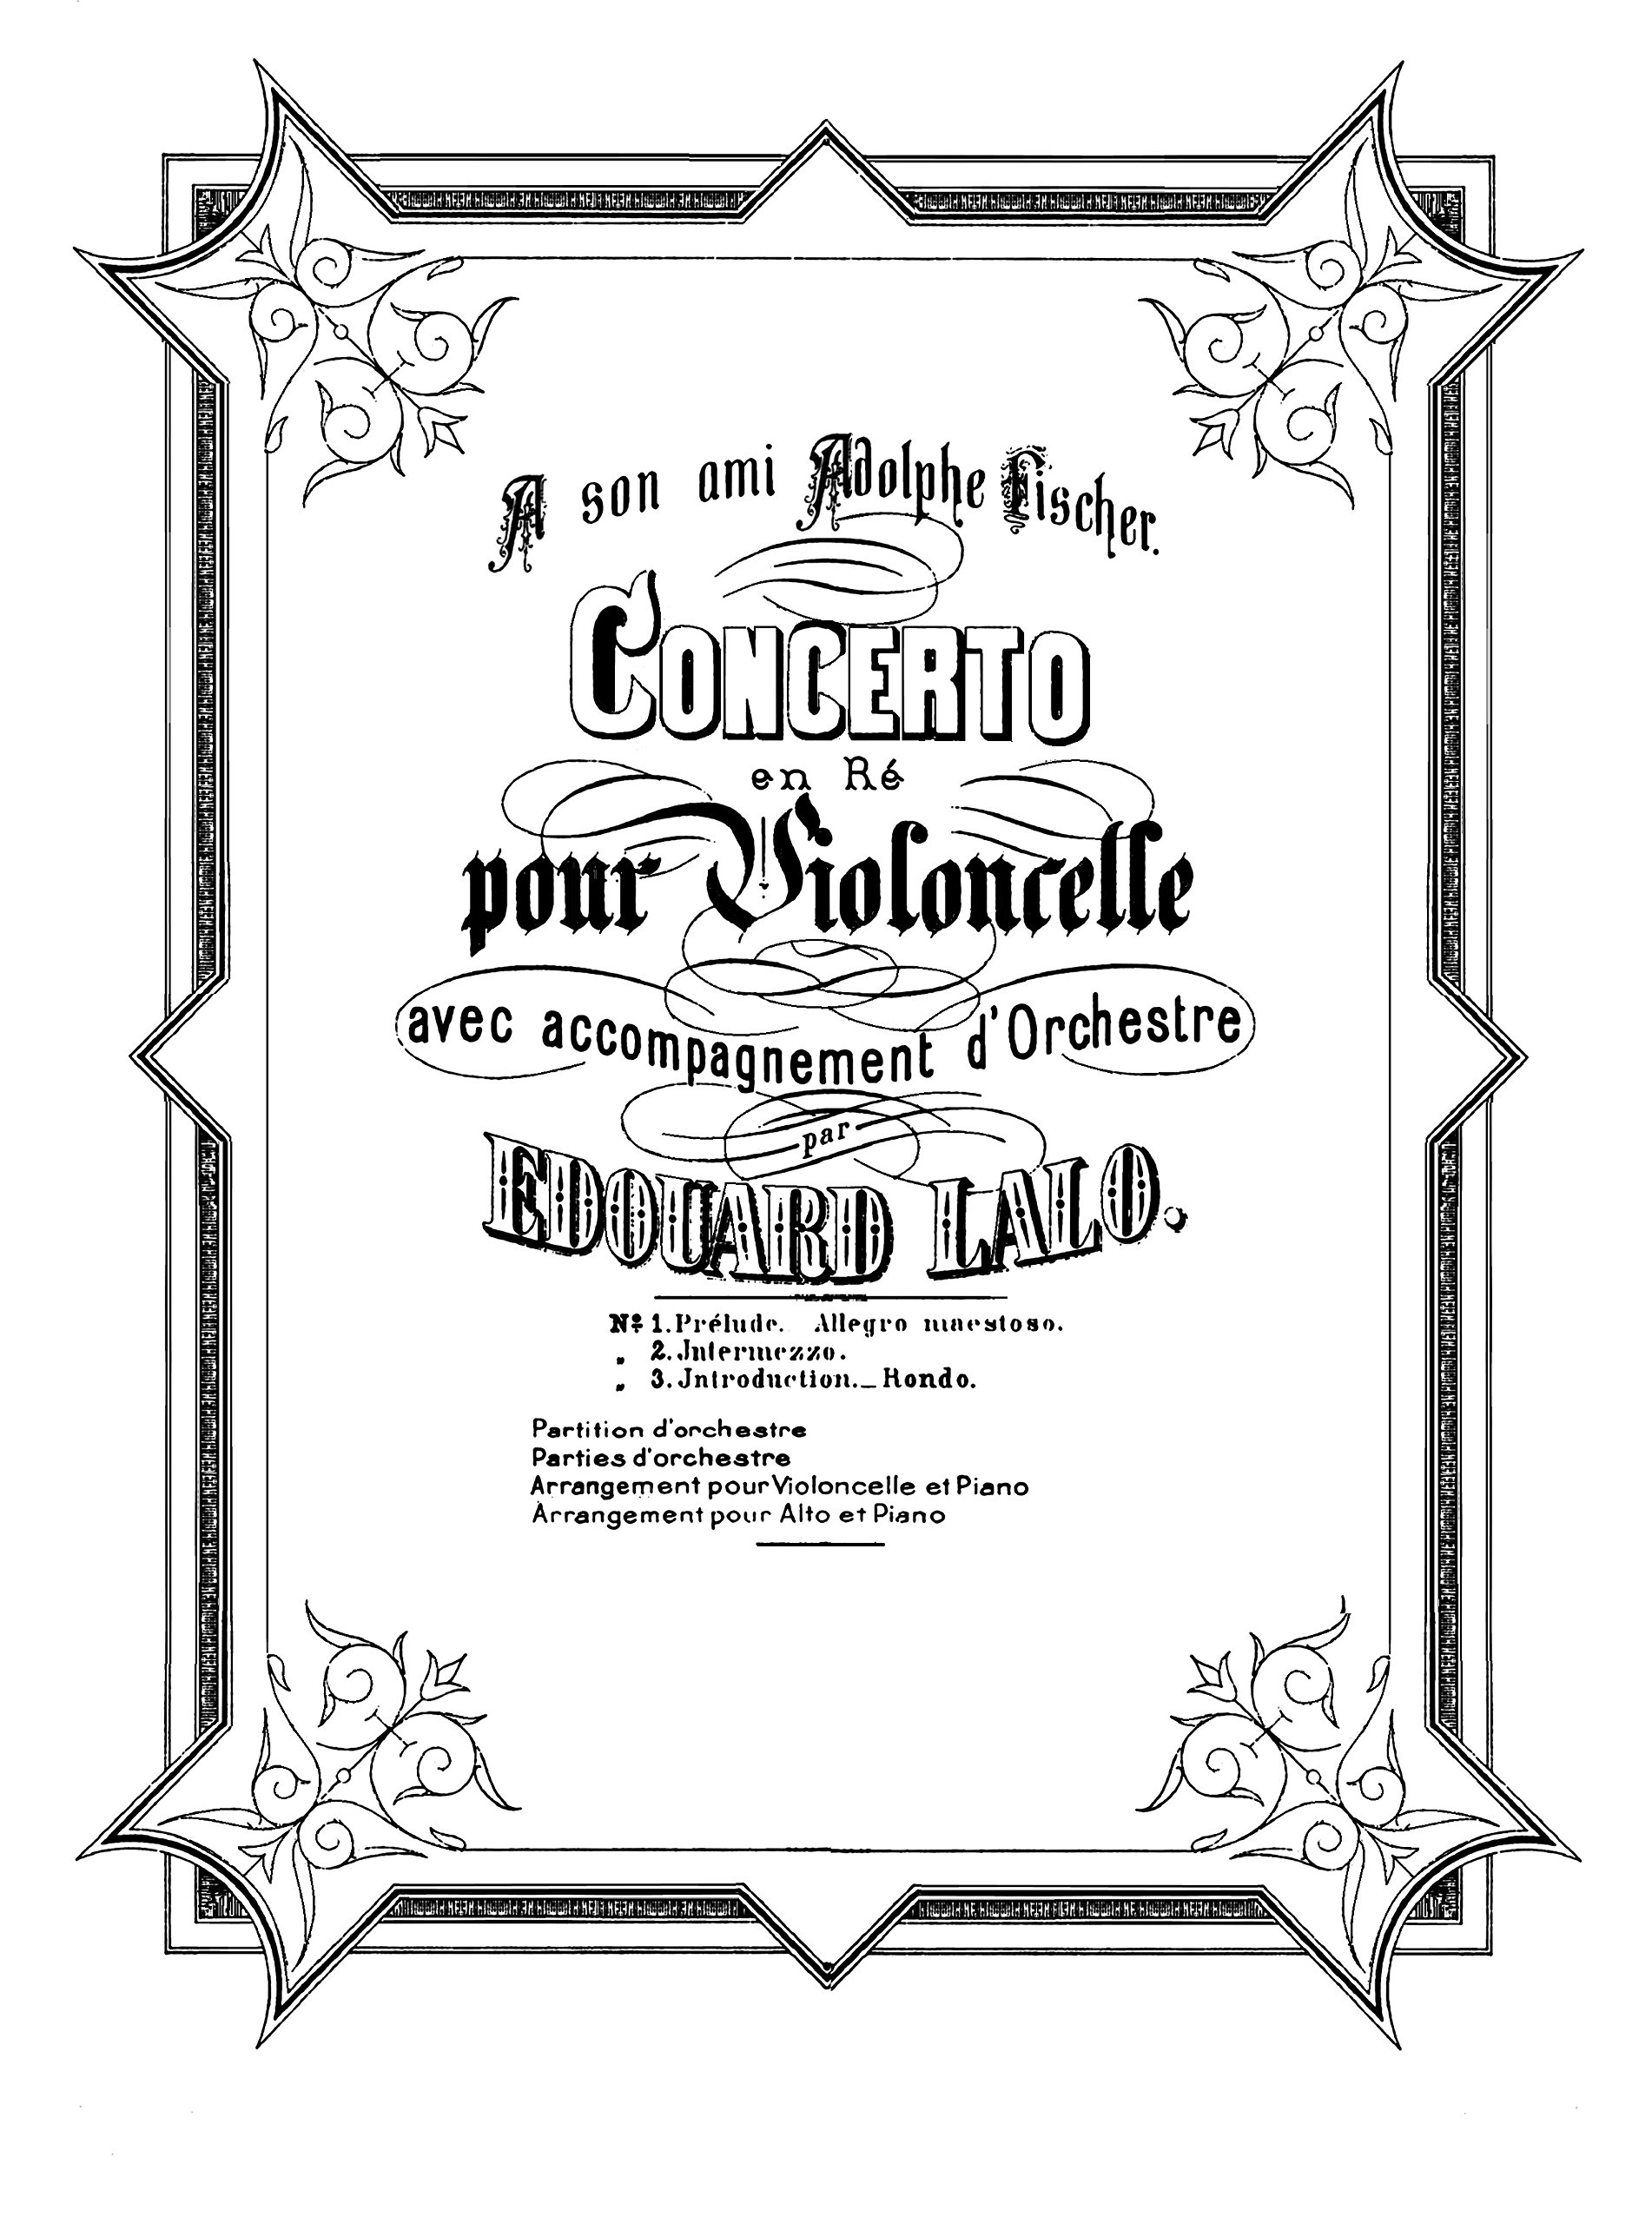 Read Online Cello Concerto by Edouard Lalo. Piano with Cello Score and Cello Part Score. [Student Loose Leaf Facsimile Edition. Re-Imaged from Original for Greater Clarity. 2015] pdf